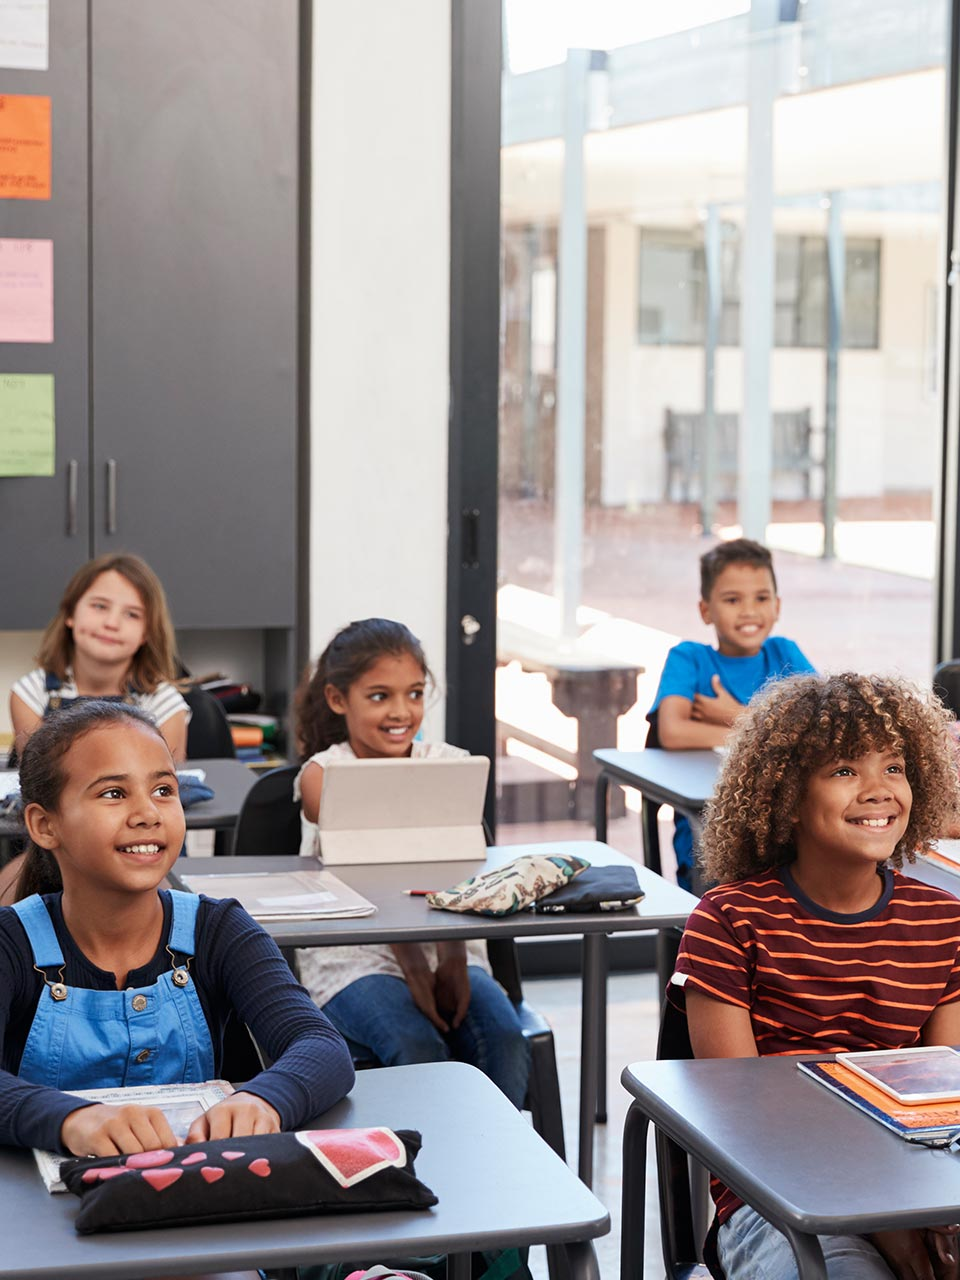 Classroom Brand Photography